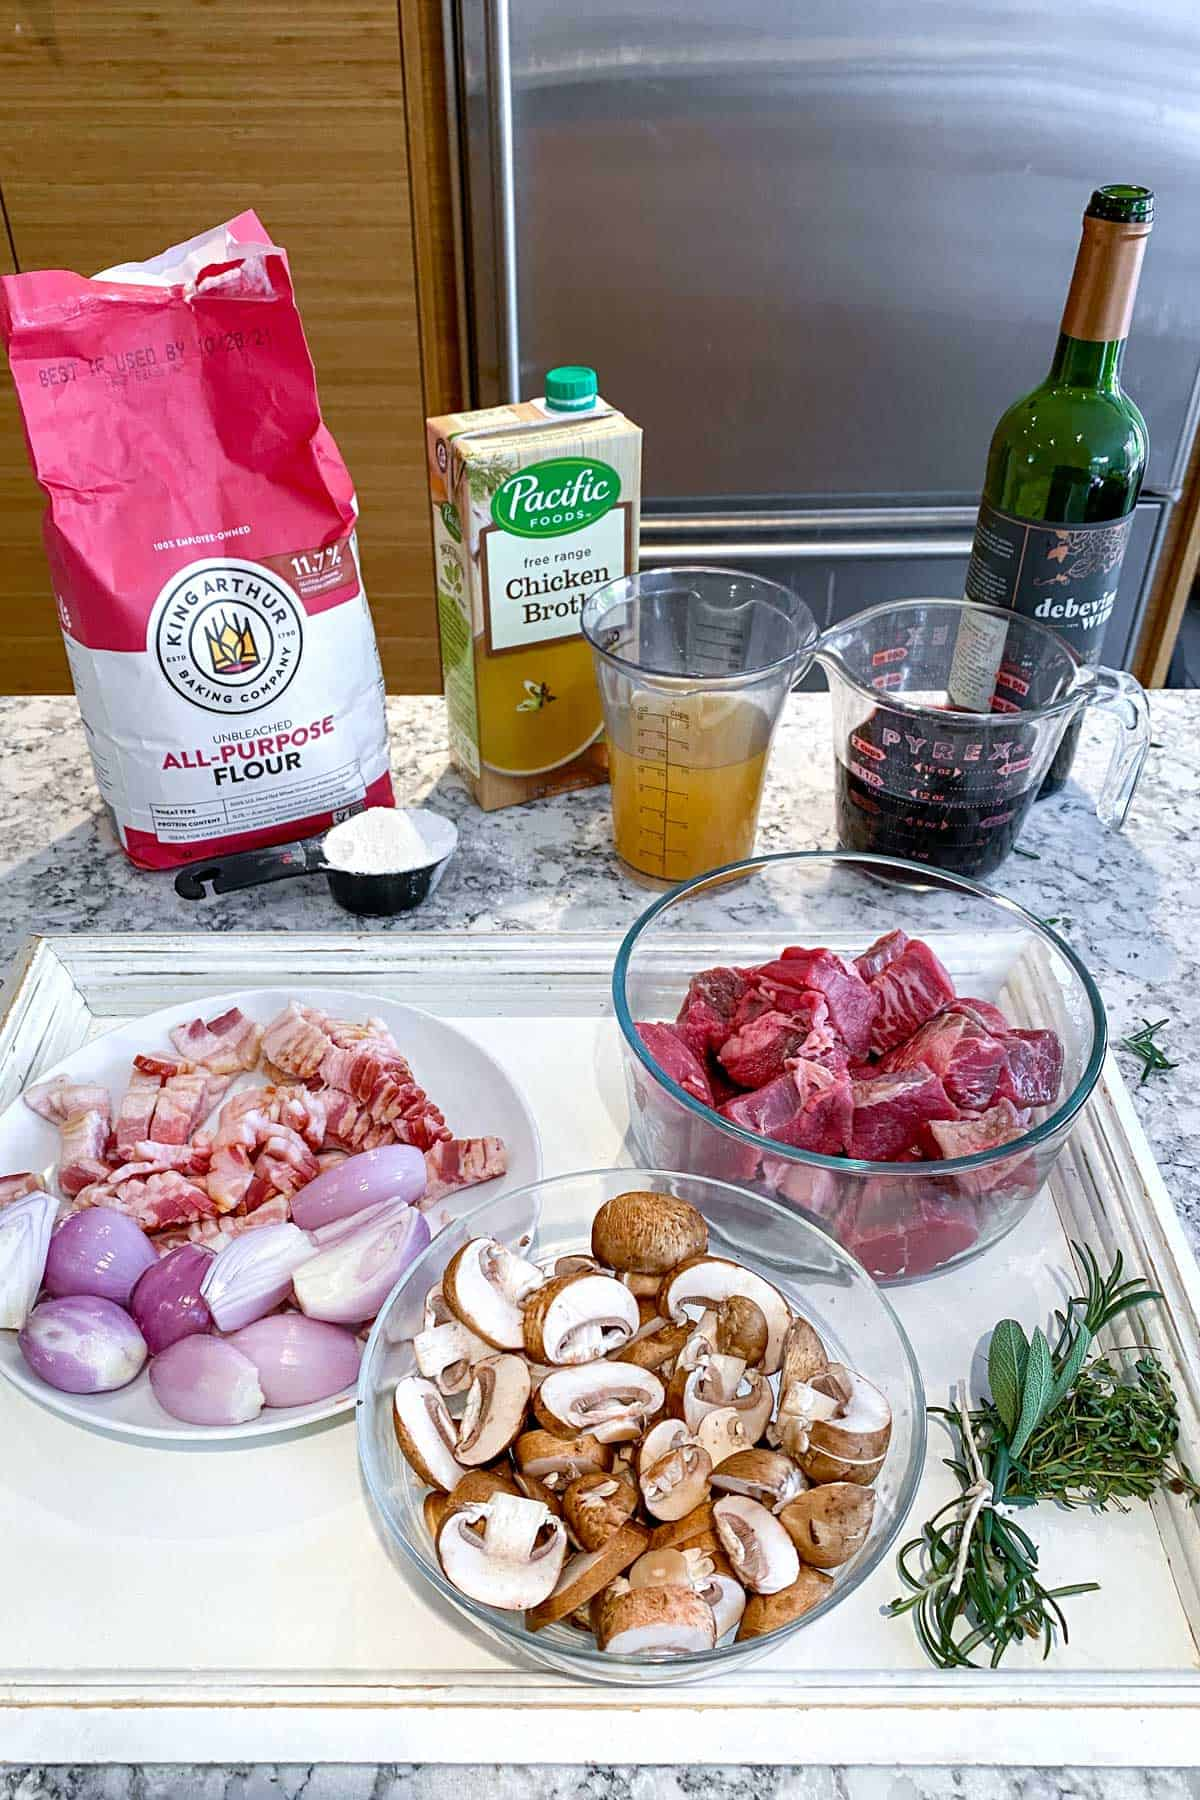 Ingredients for beef bourguignon on a white countertop: a bag of flour, glass bowl with cubed beef, bowl of sliced mushrooms, plate with chopped bacon and shallots, chicken broth in a clear cup, red wine in a clear cup, flour in a small black cup and herbs tied together